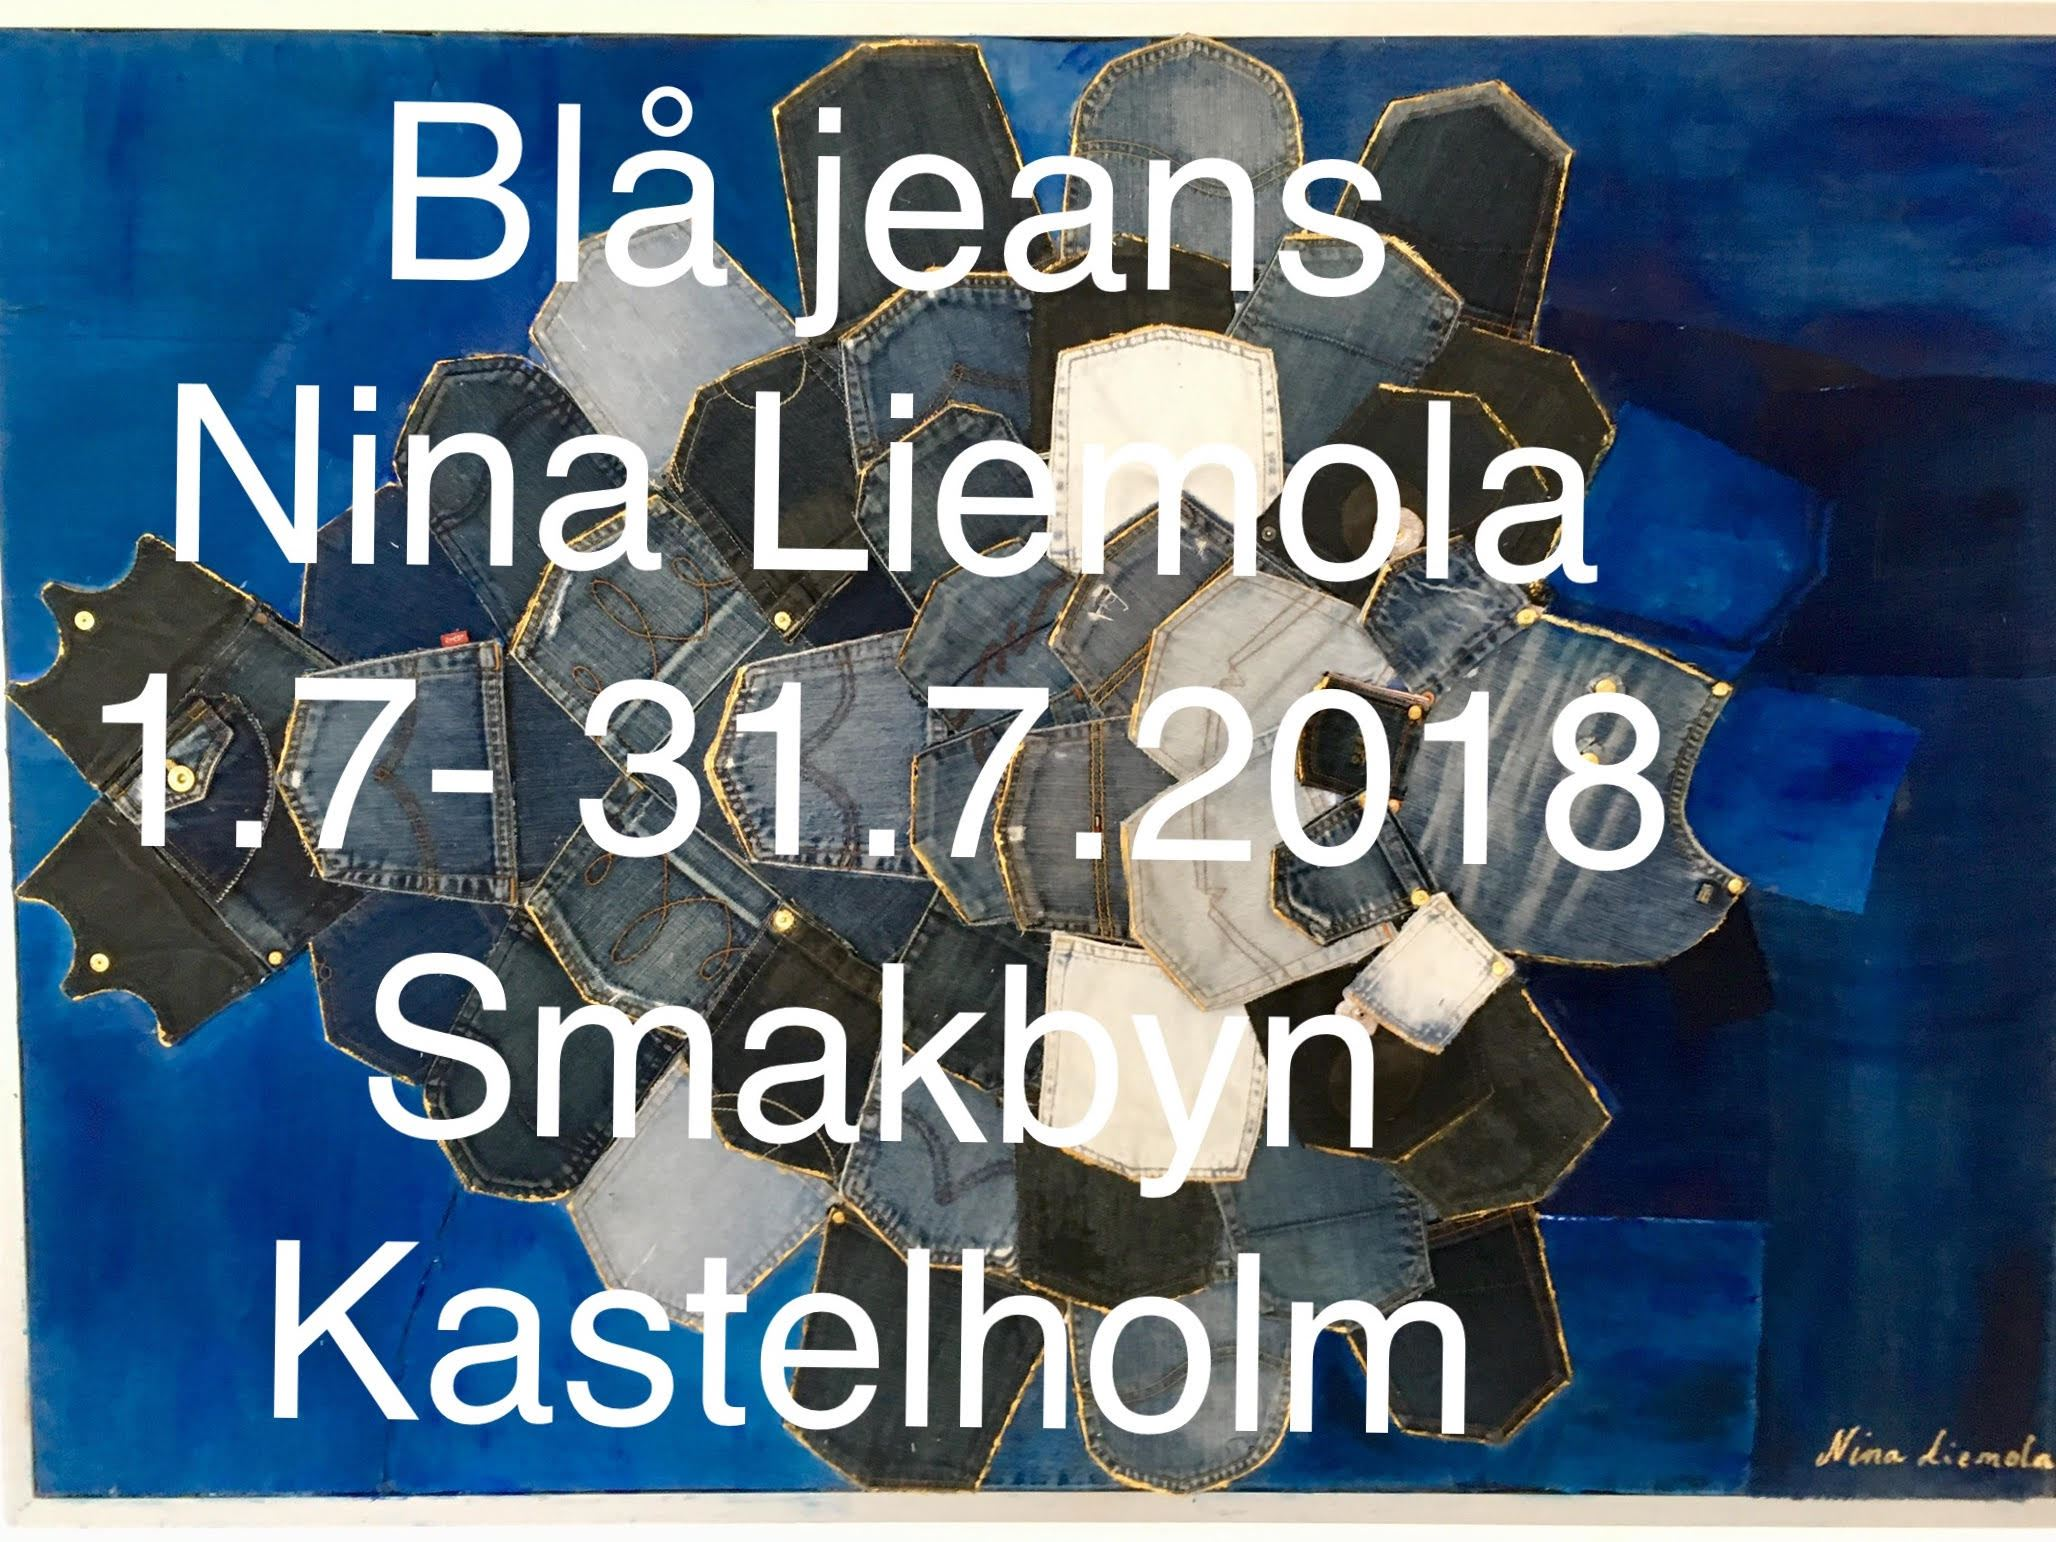 Exhibition: Blå jeans by Nina Liemola